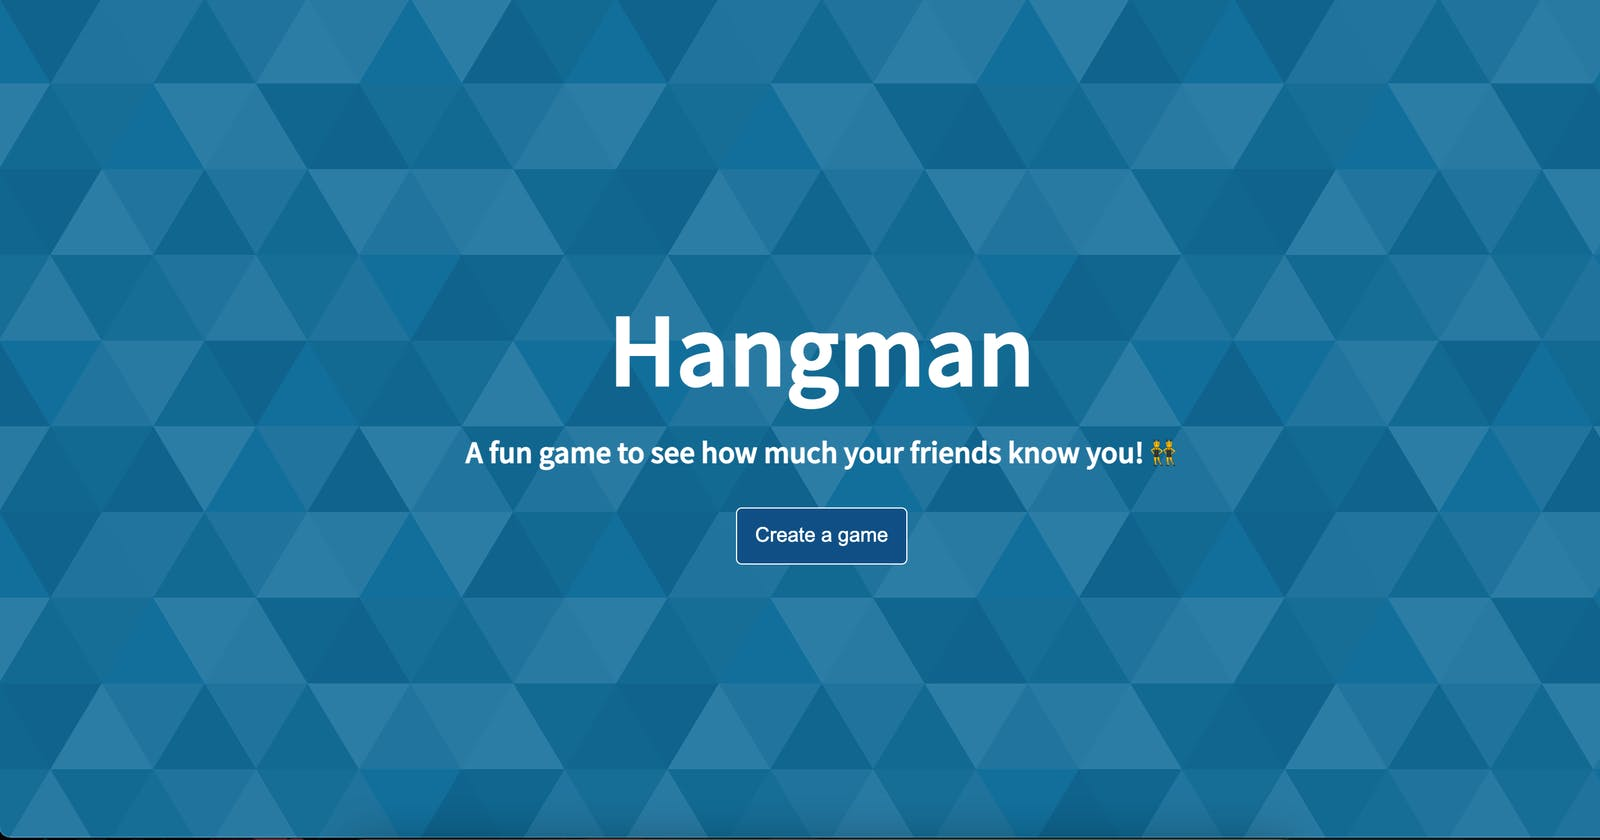 Hangman - A fun game to see how much people know you.